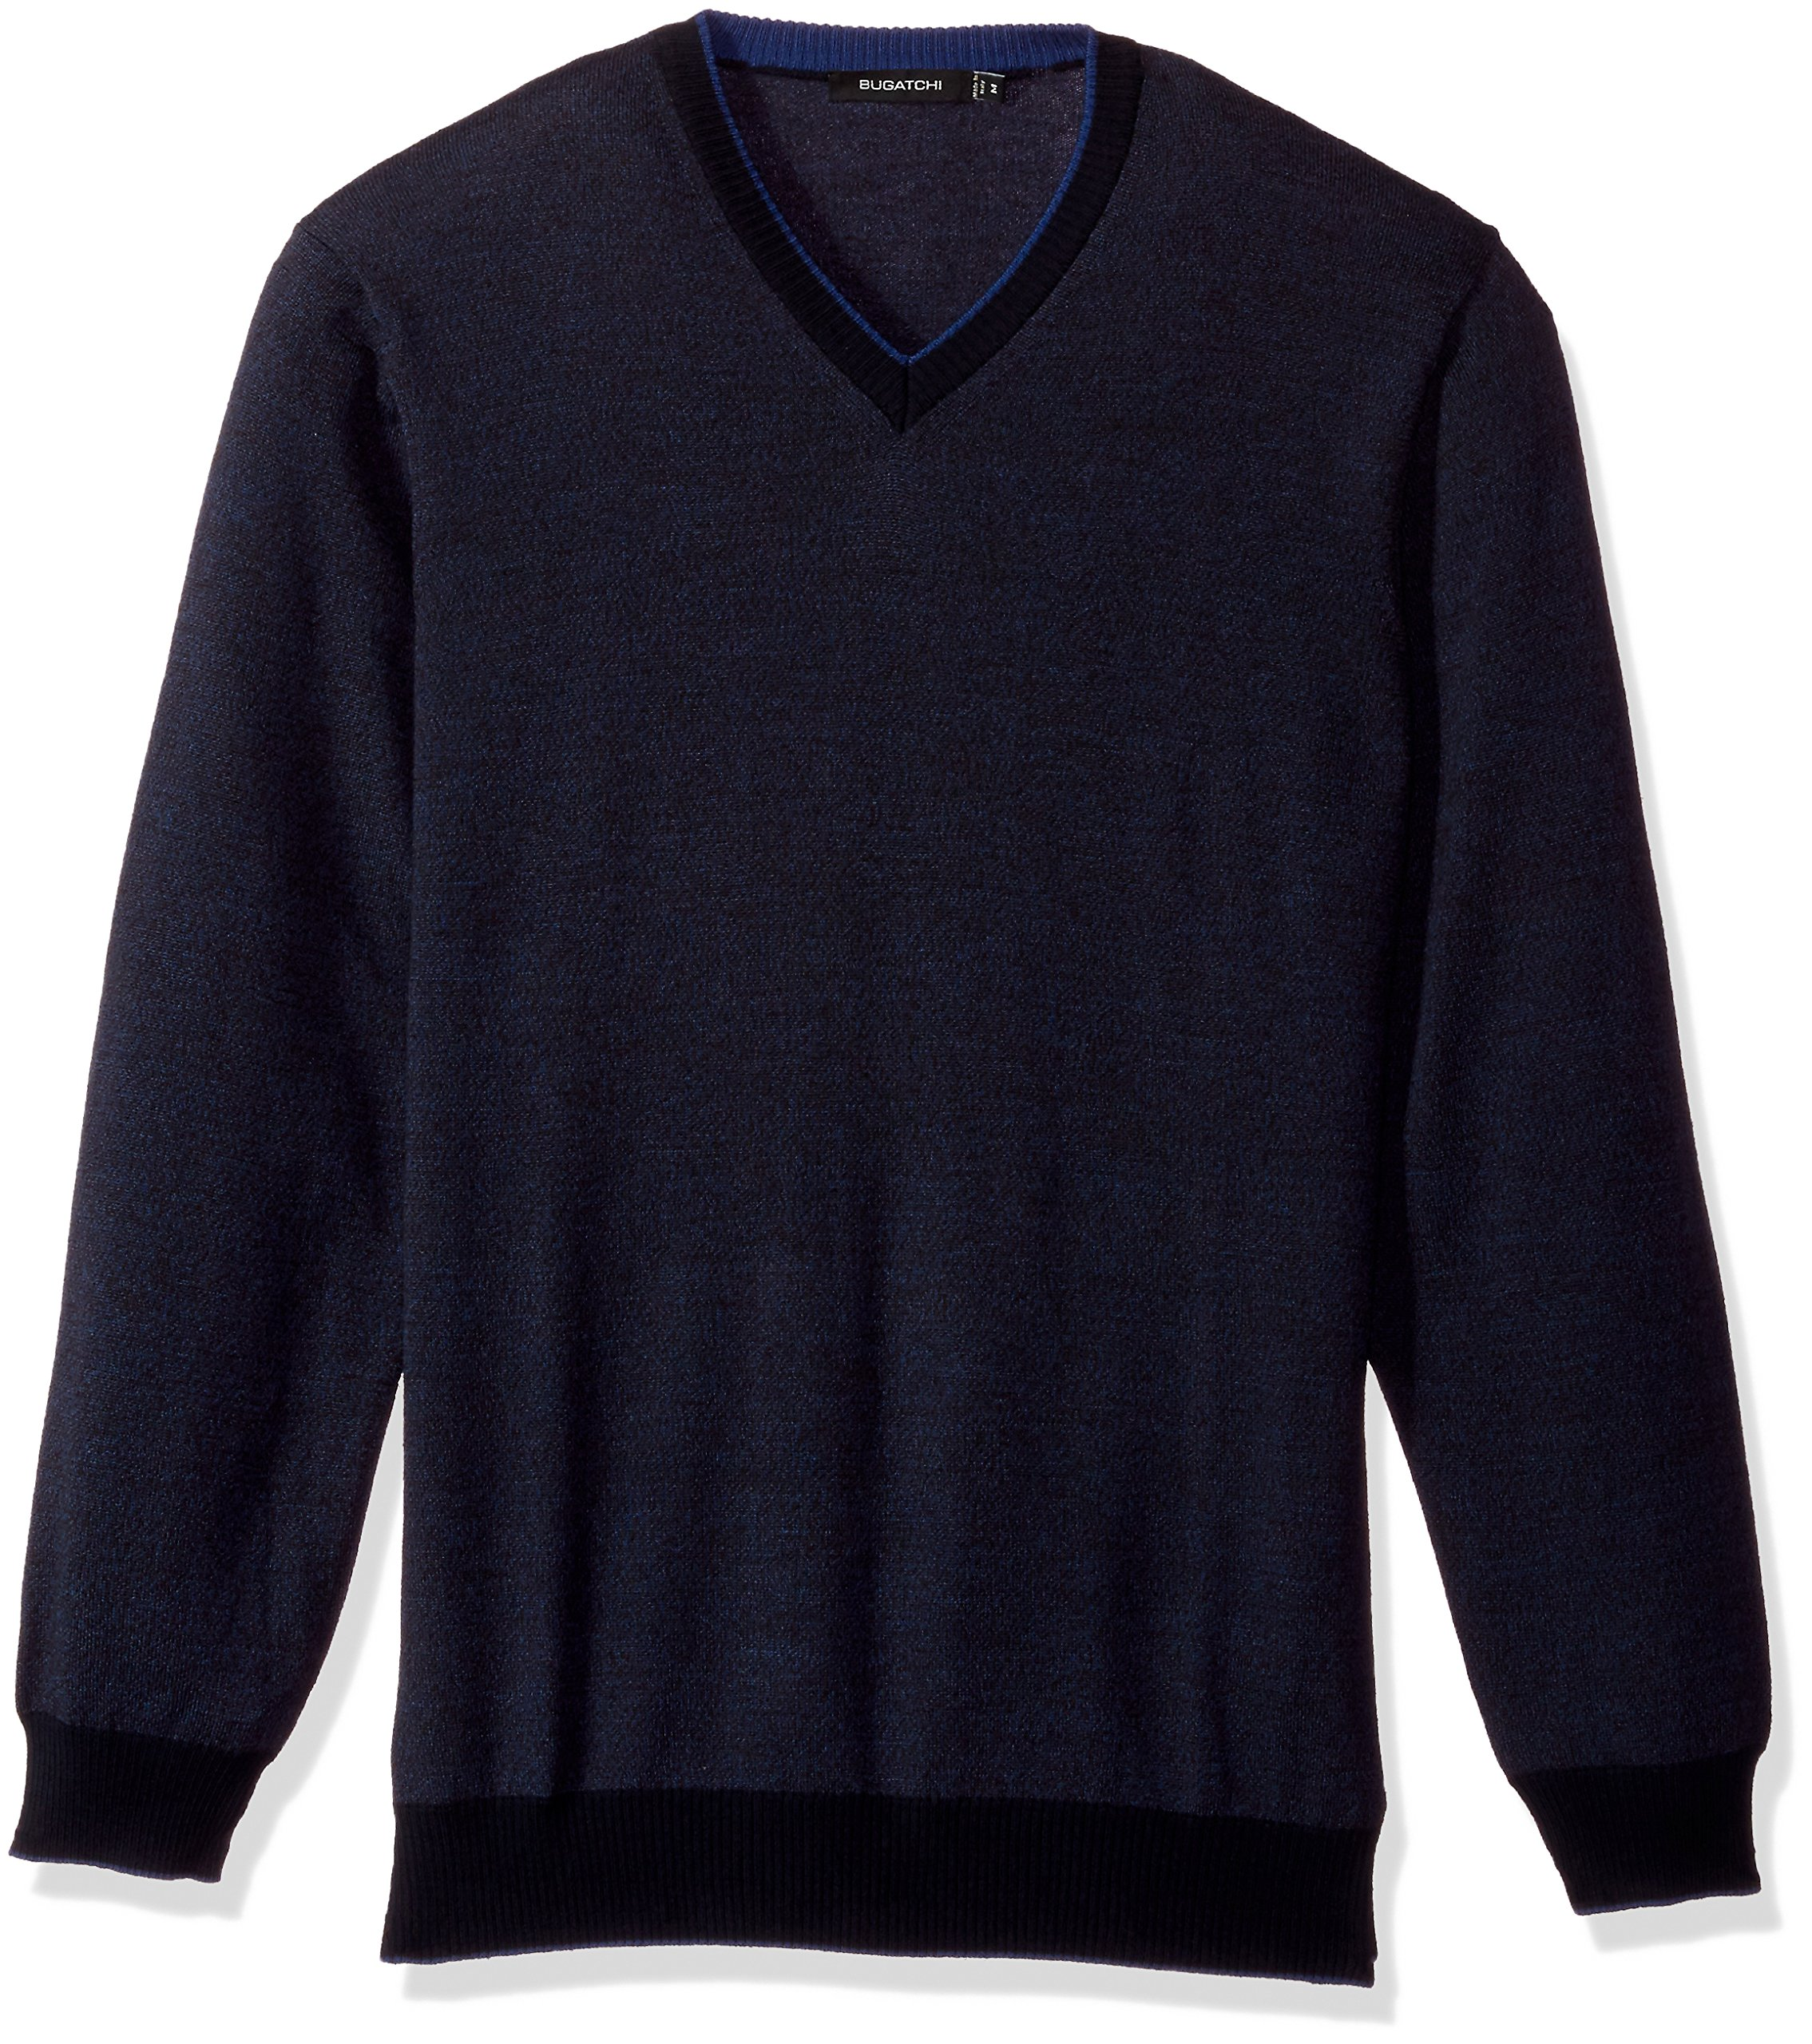 BUGATCHI Men's Extra Fine Merino Wool Sweater, Navy, Small